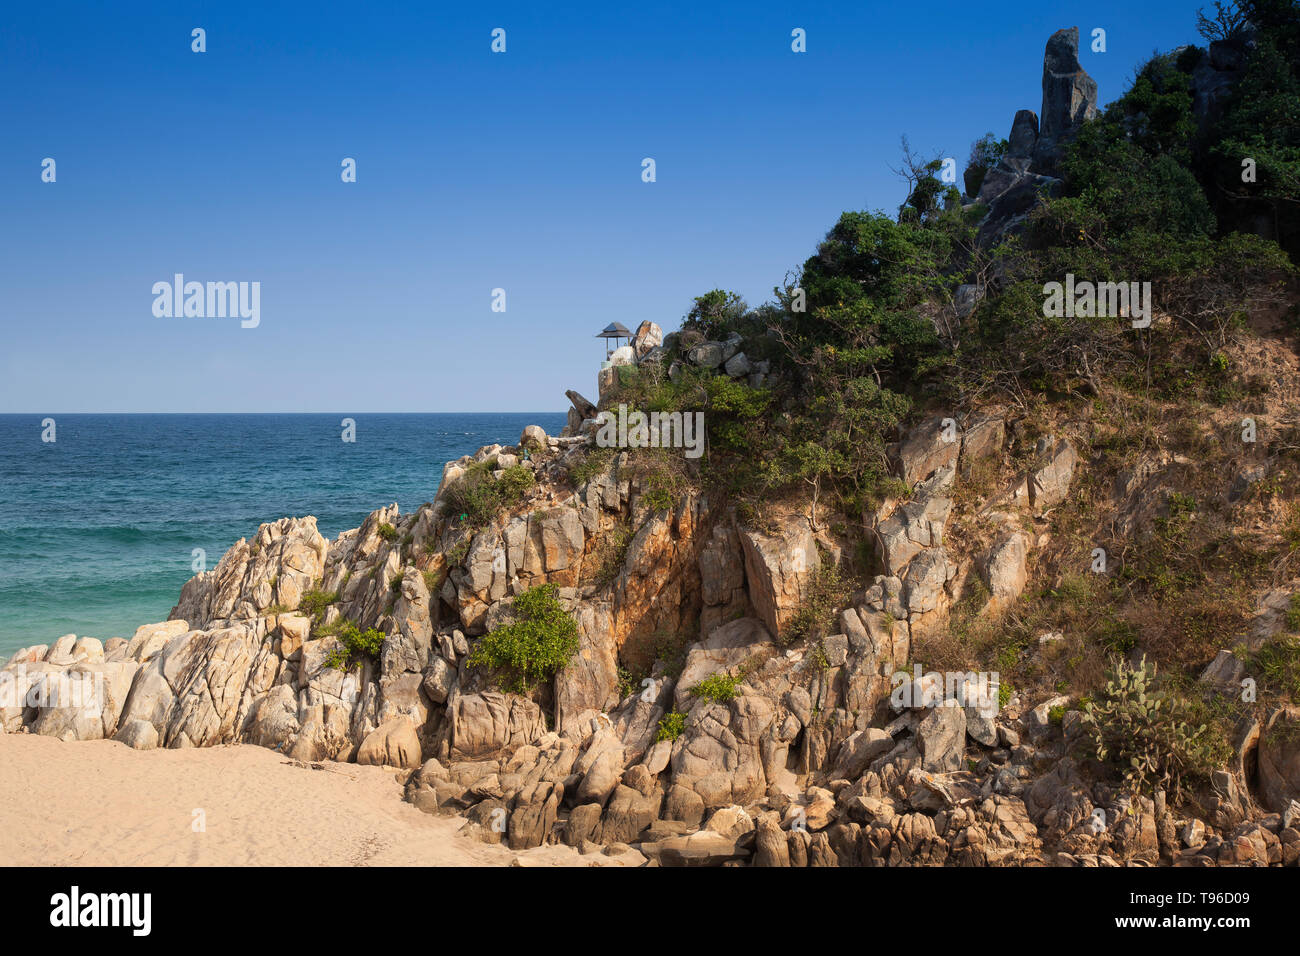 Lonely bay near Vinh Hy, south china sea,Vietnam,asia - Stock Image